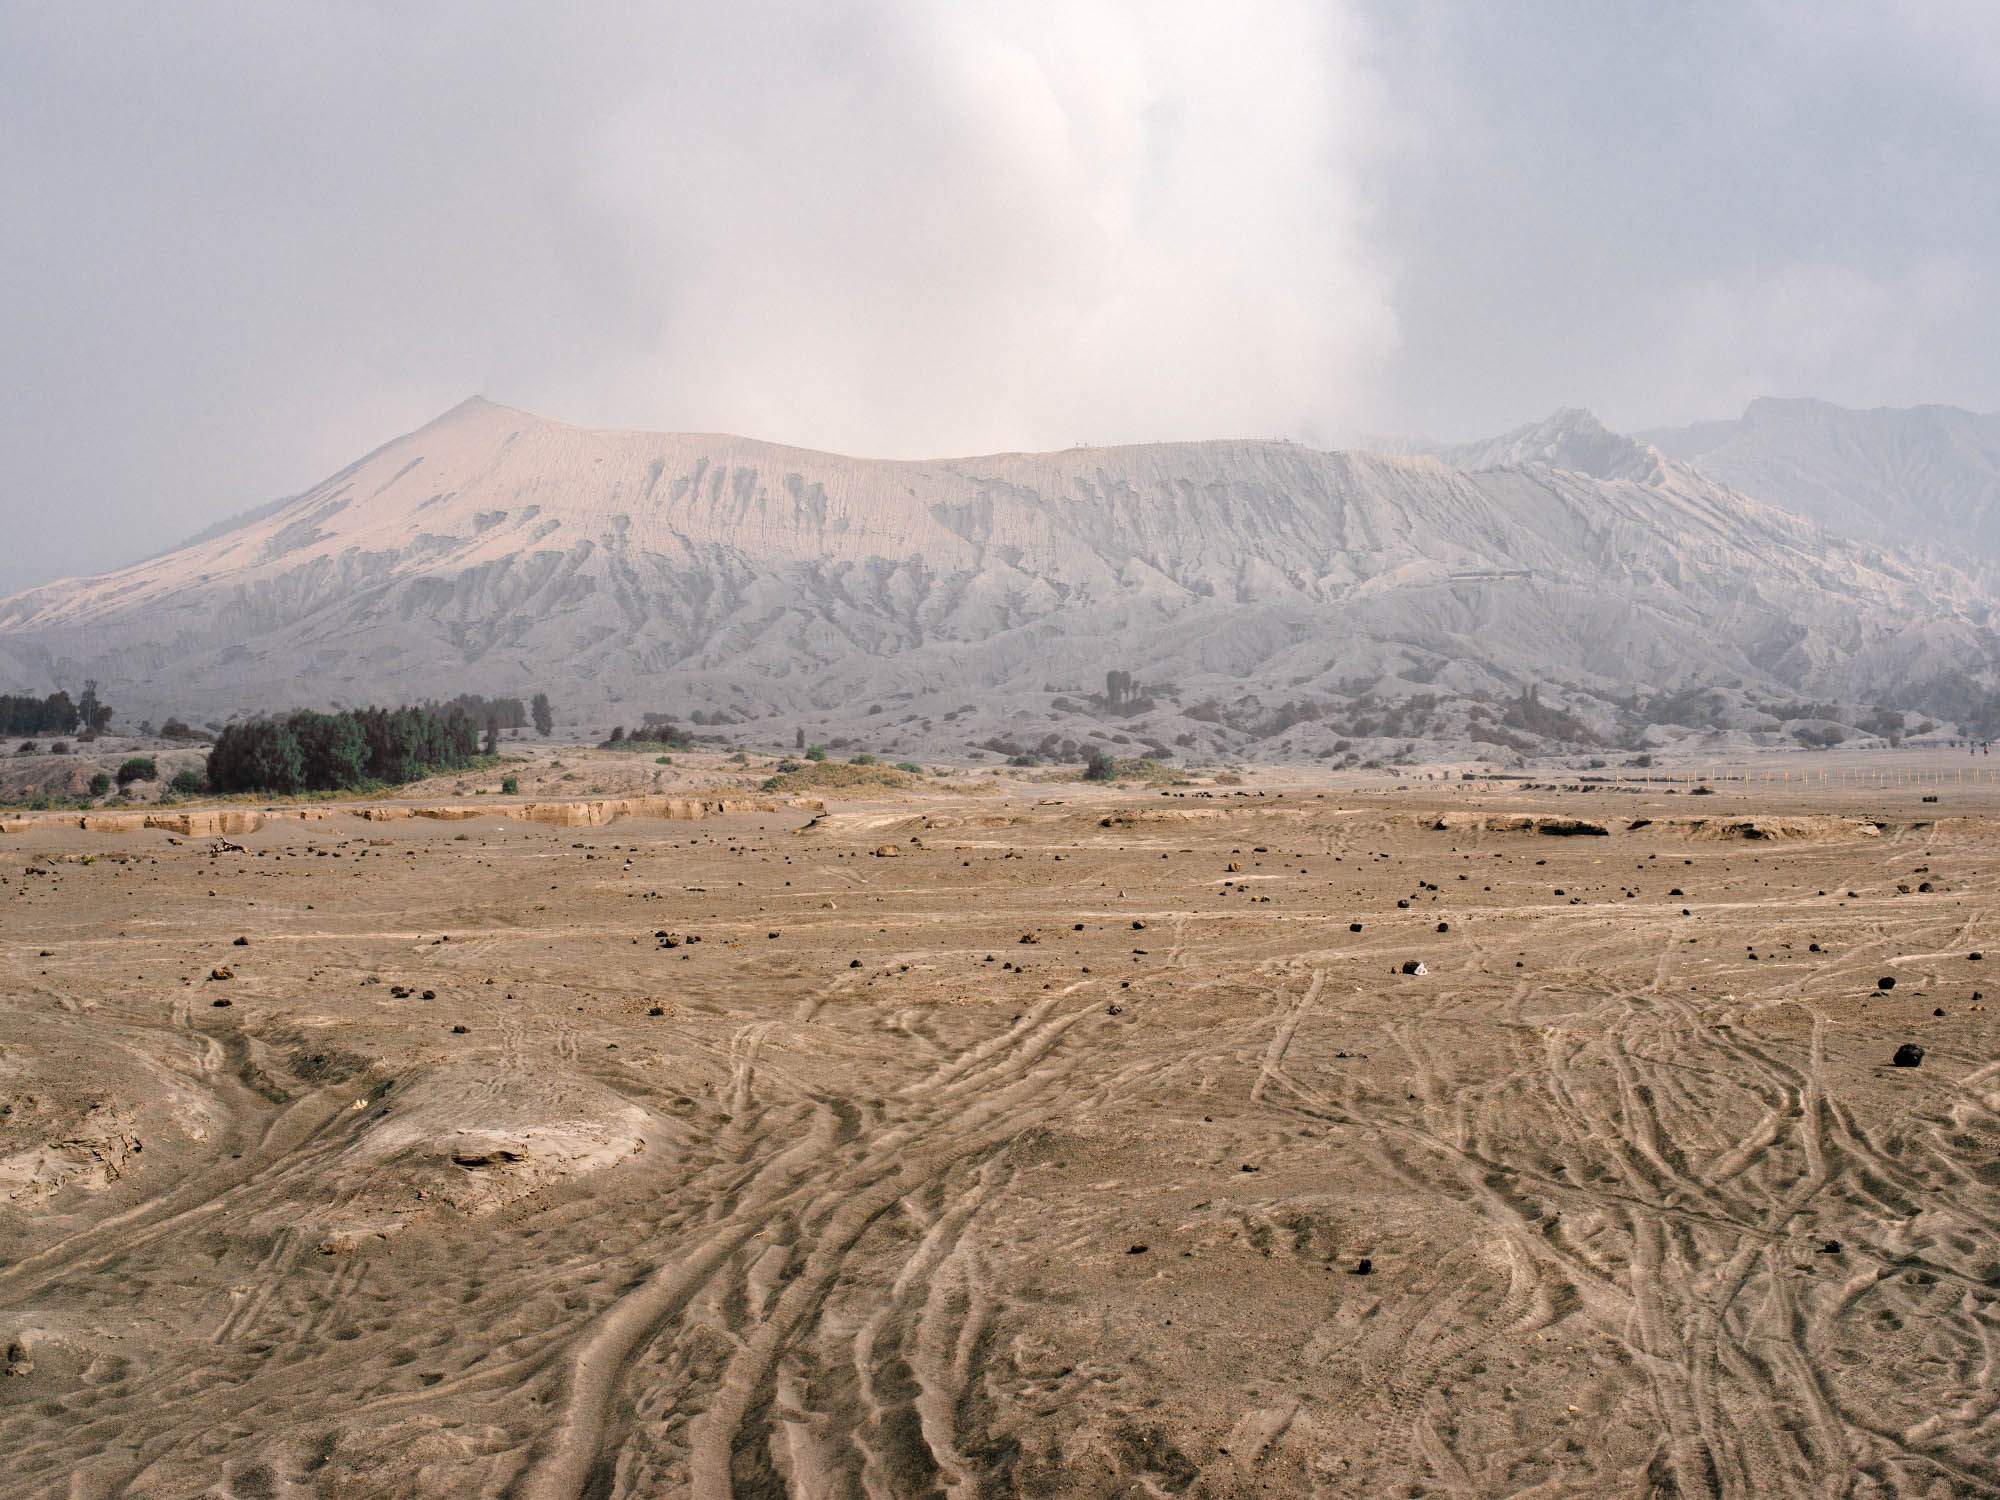 joris-hermans-photography-bromo-03.jpg